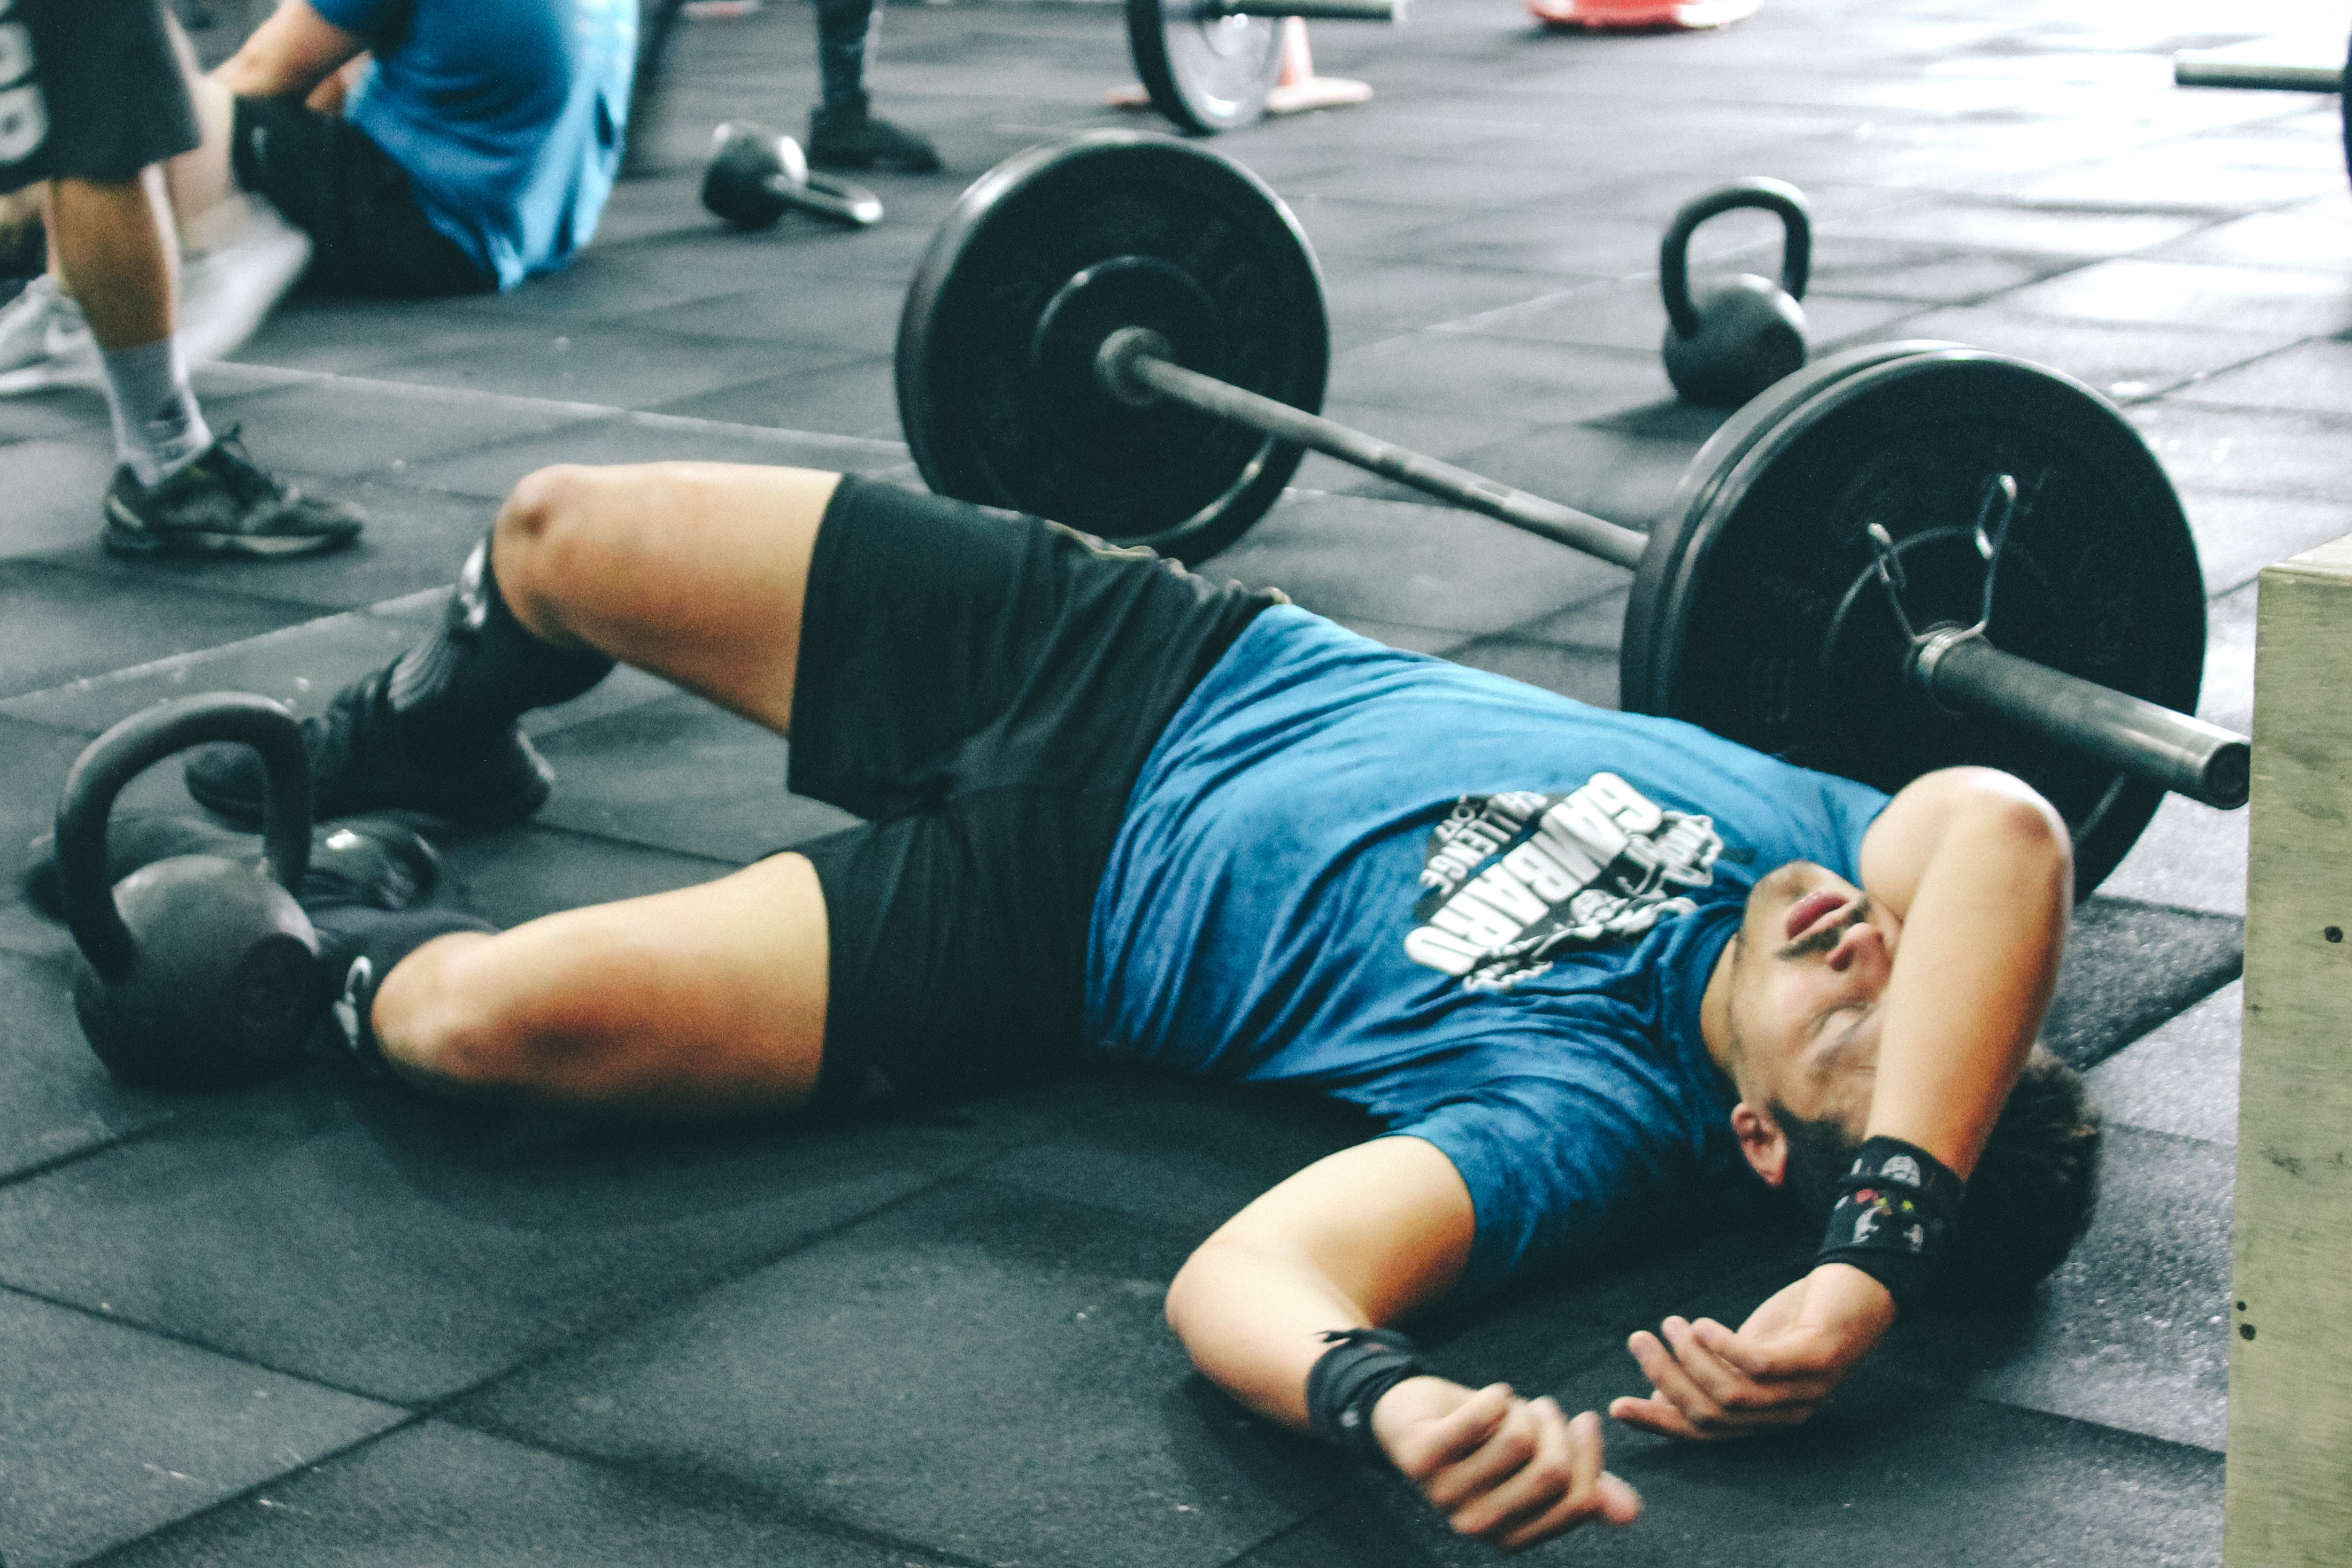 Man Lying on Rubber Mat Near Barbell Inside the Gym, Activity, Male, Weights, Weightlifting, HQ Photo